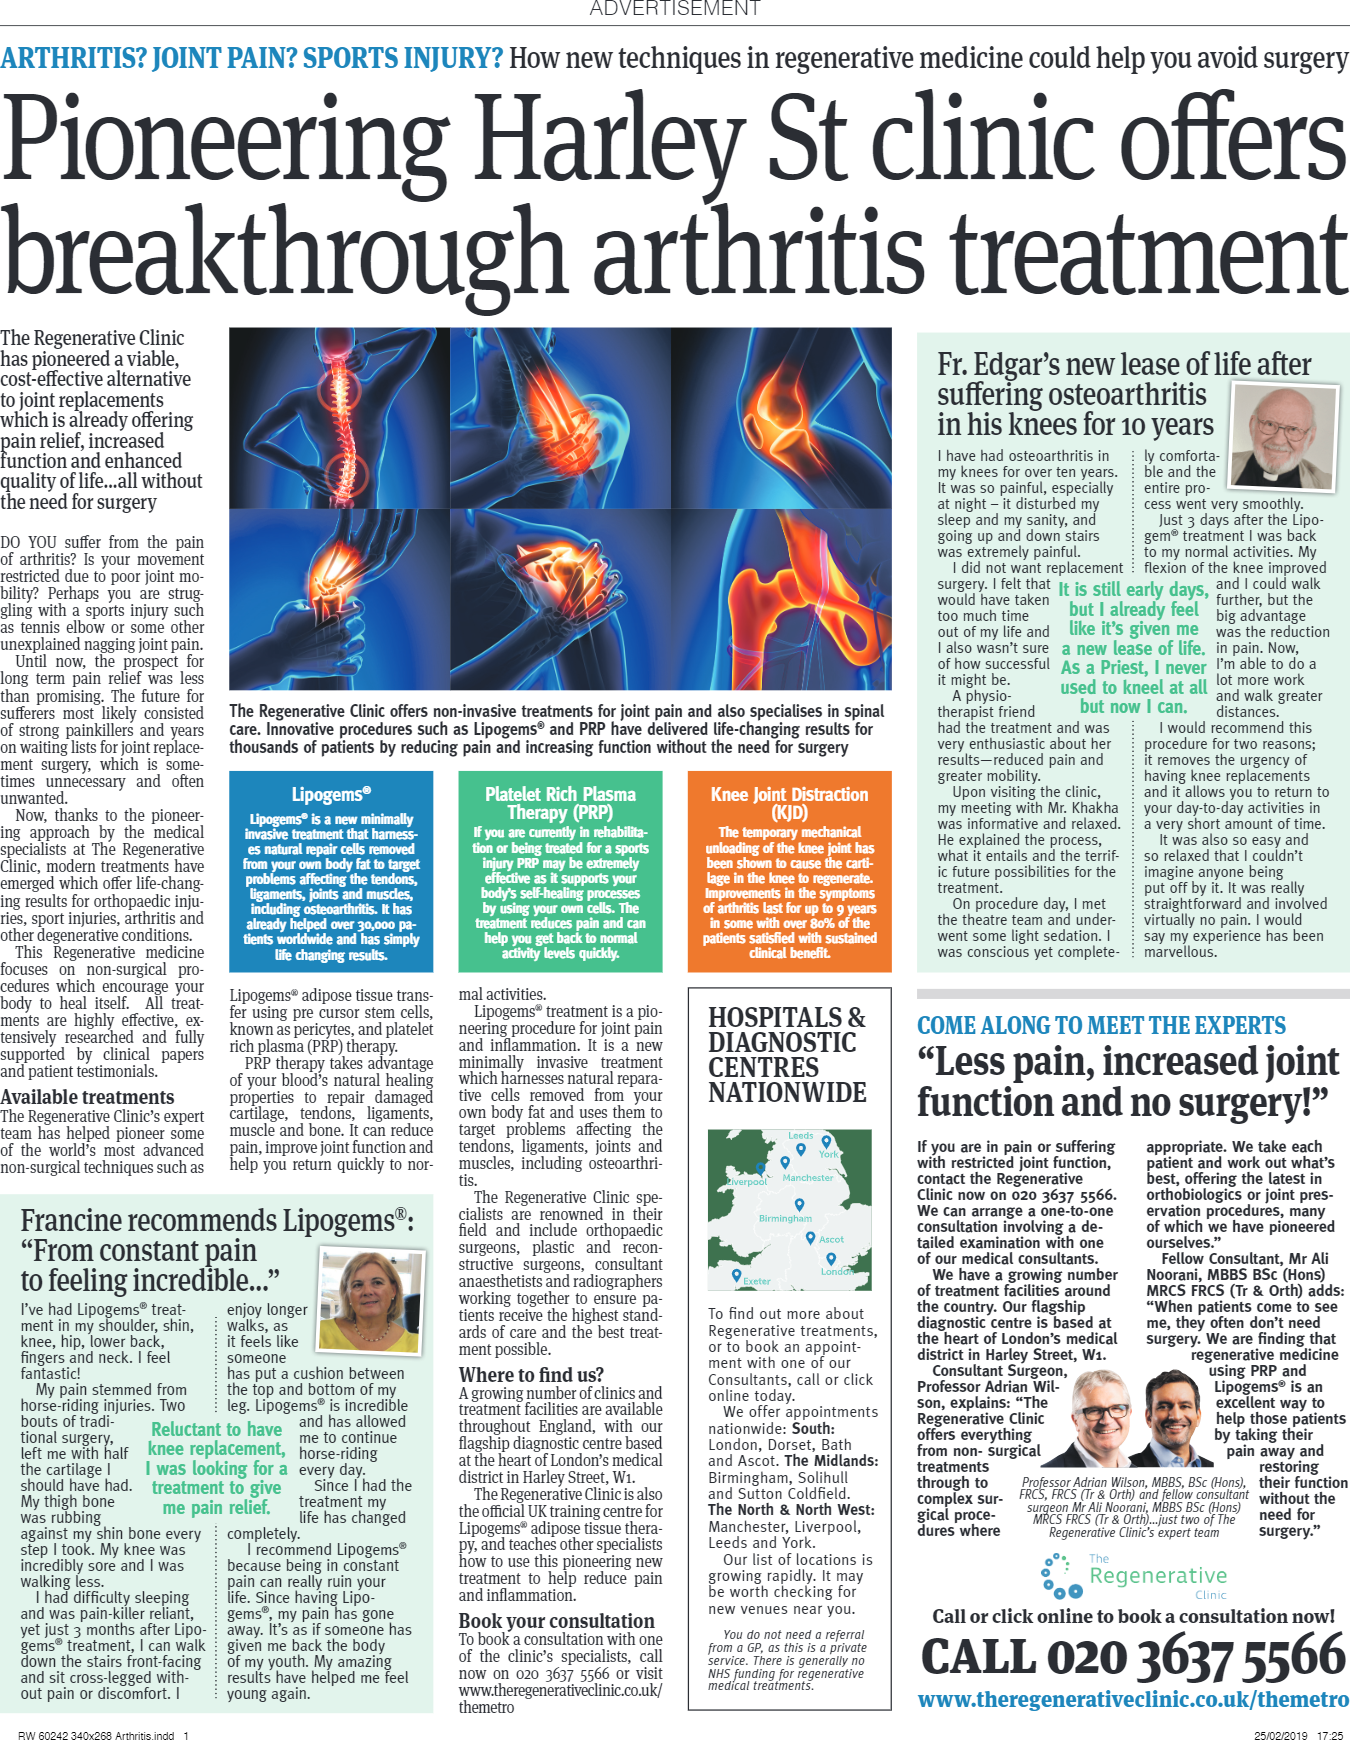 Pioneering Harley St clinic offers breakthrough arthritis treatment